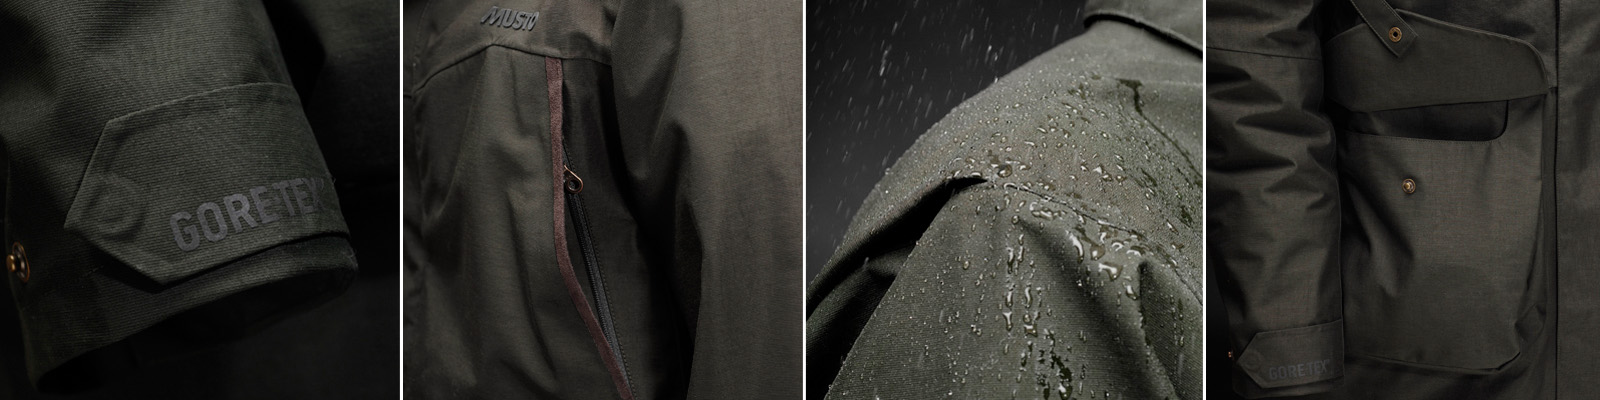 Musto Storm Jacket - Cuff, Handwarmer Pocket, DWR finish and Cartridge pockets with retainer